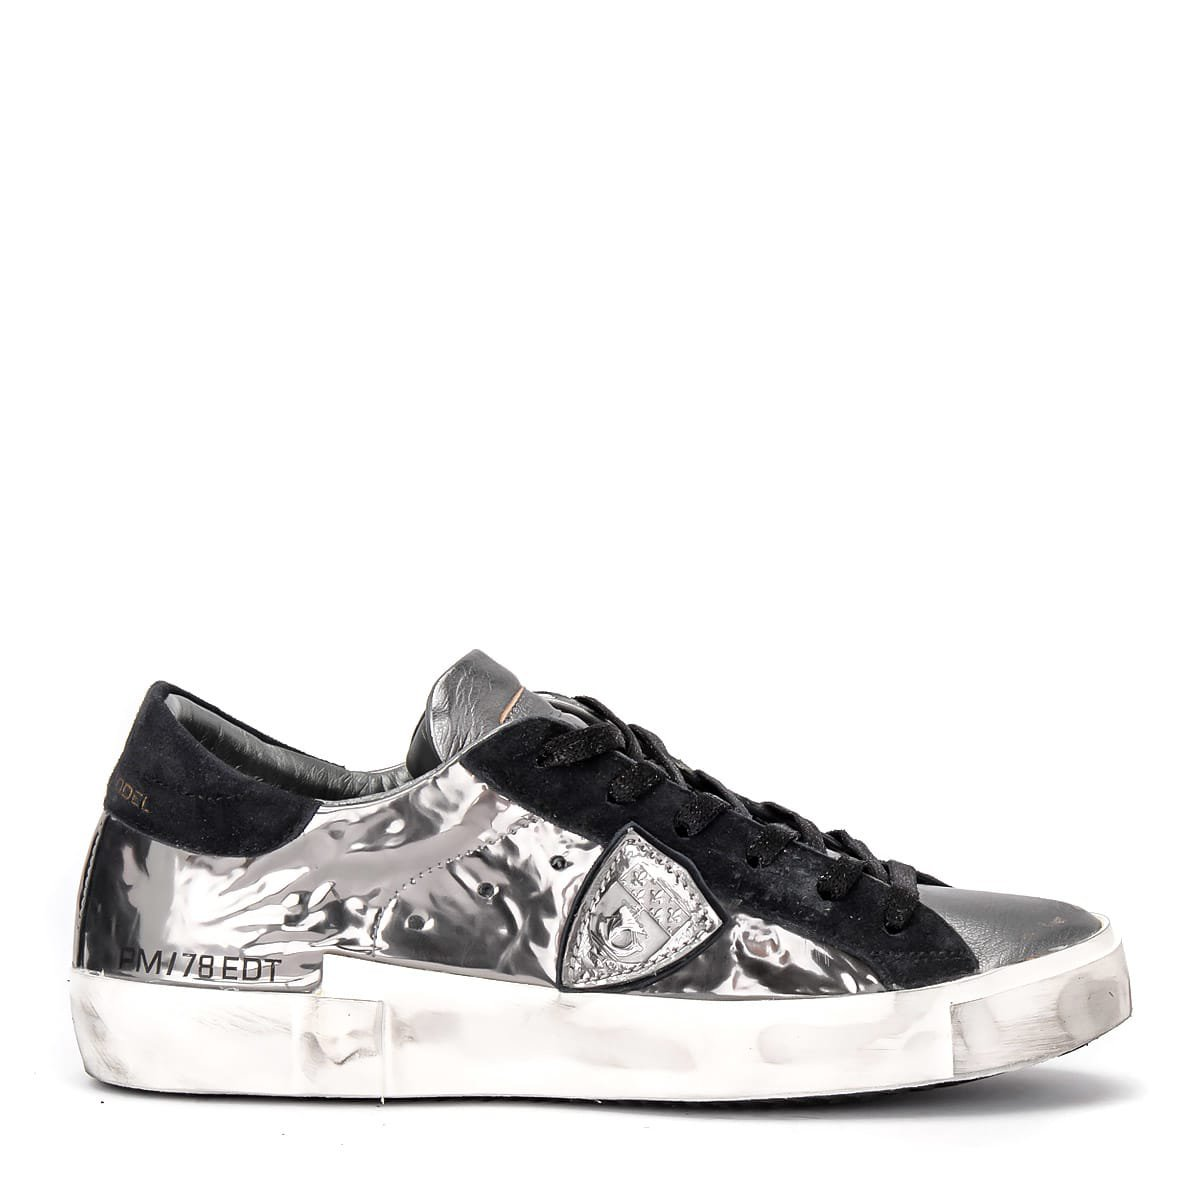 Philippe Model Paris X Sneaker In Laminated Silver Leather